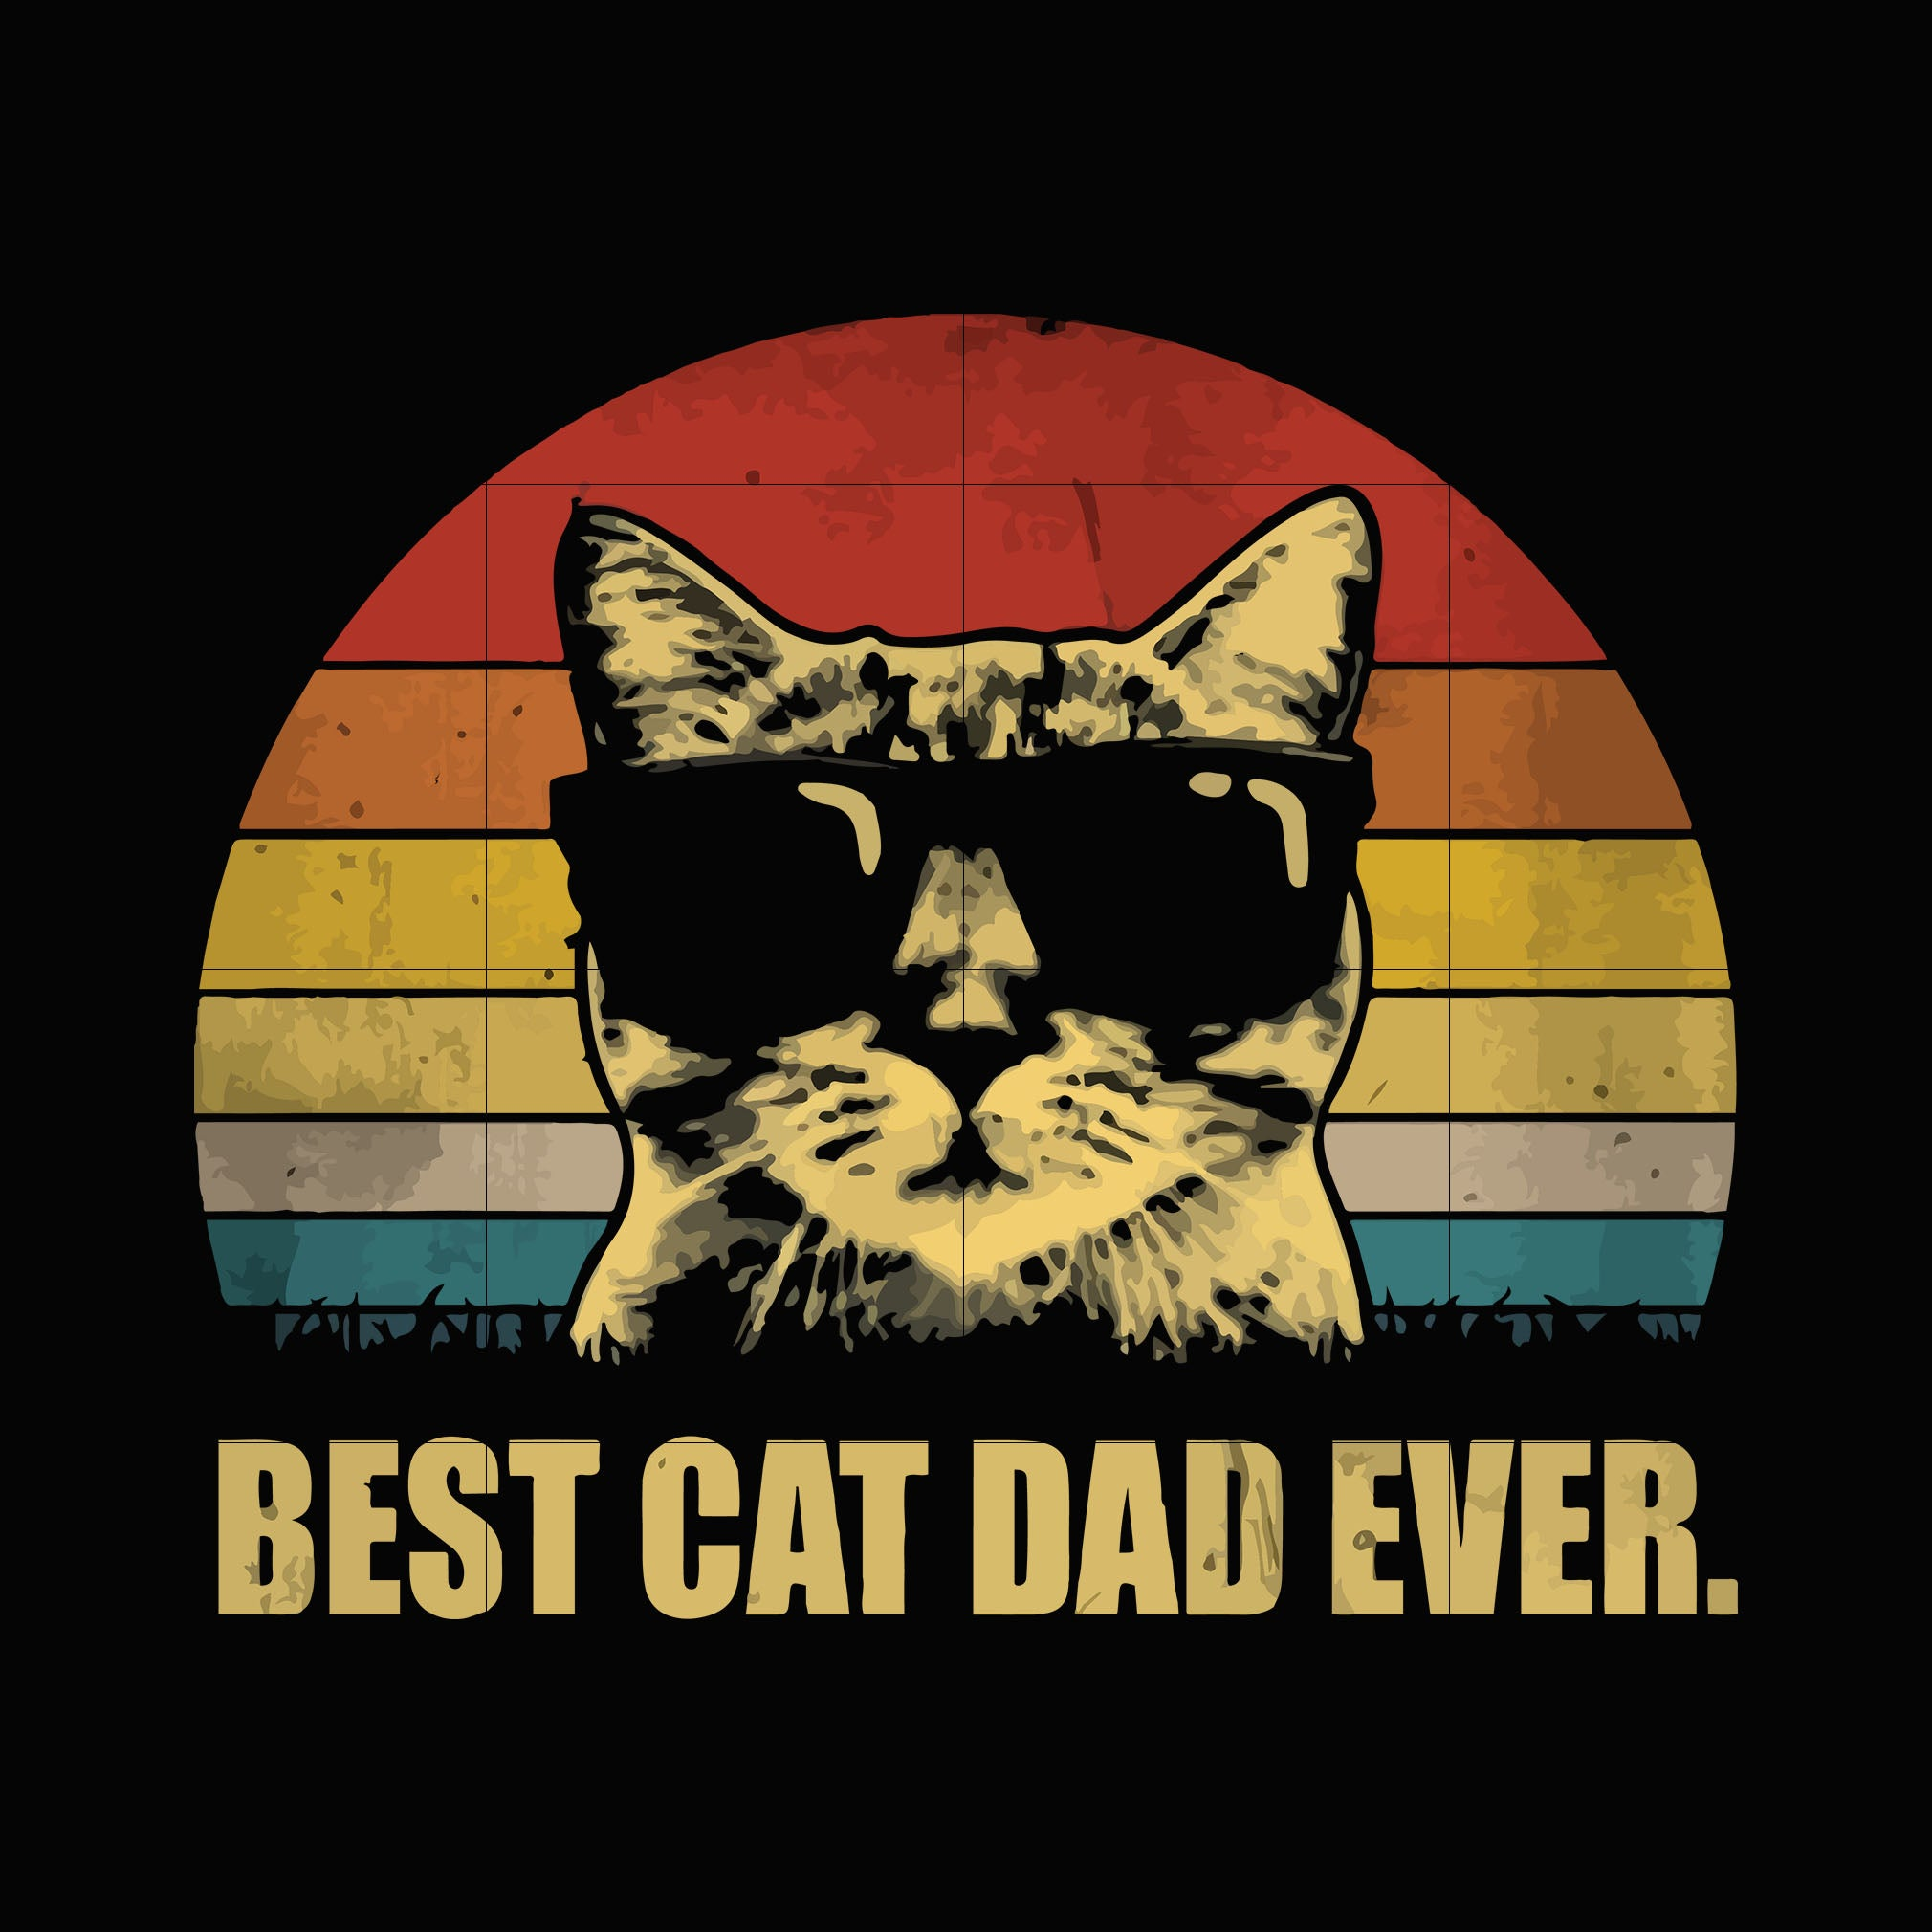 Best cat dad ever svg,dxf,eps,png digital file